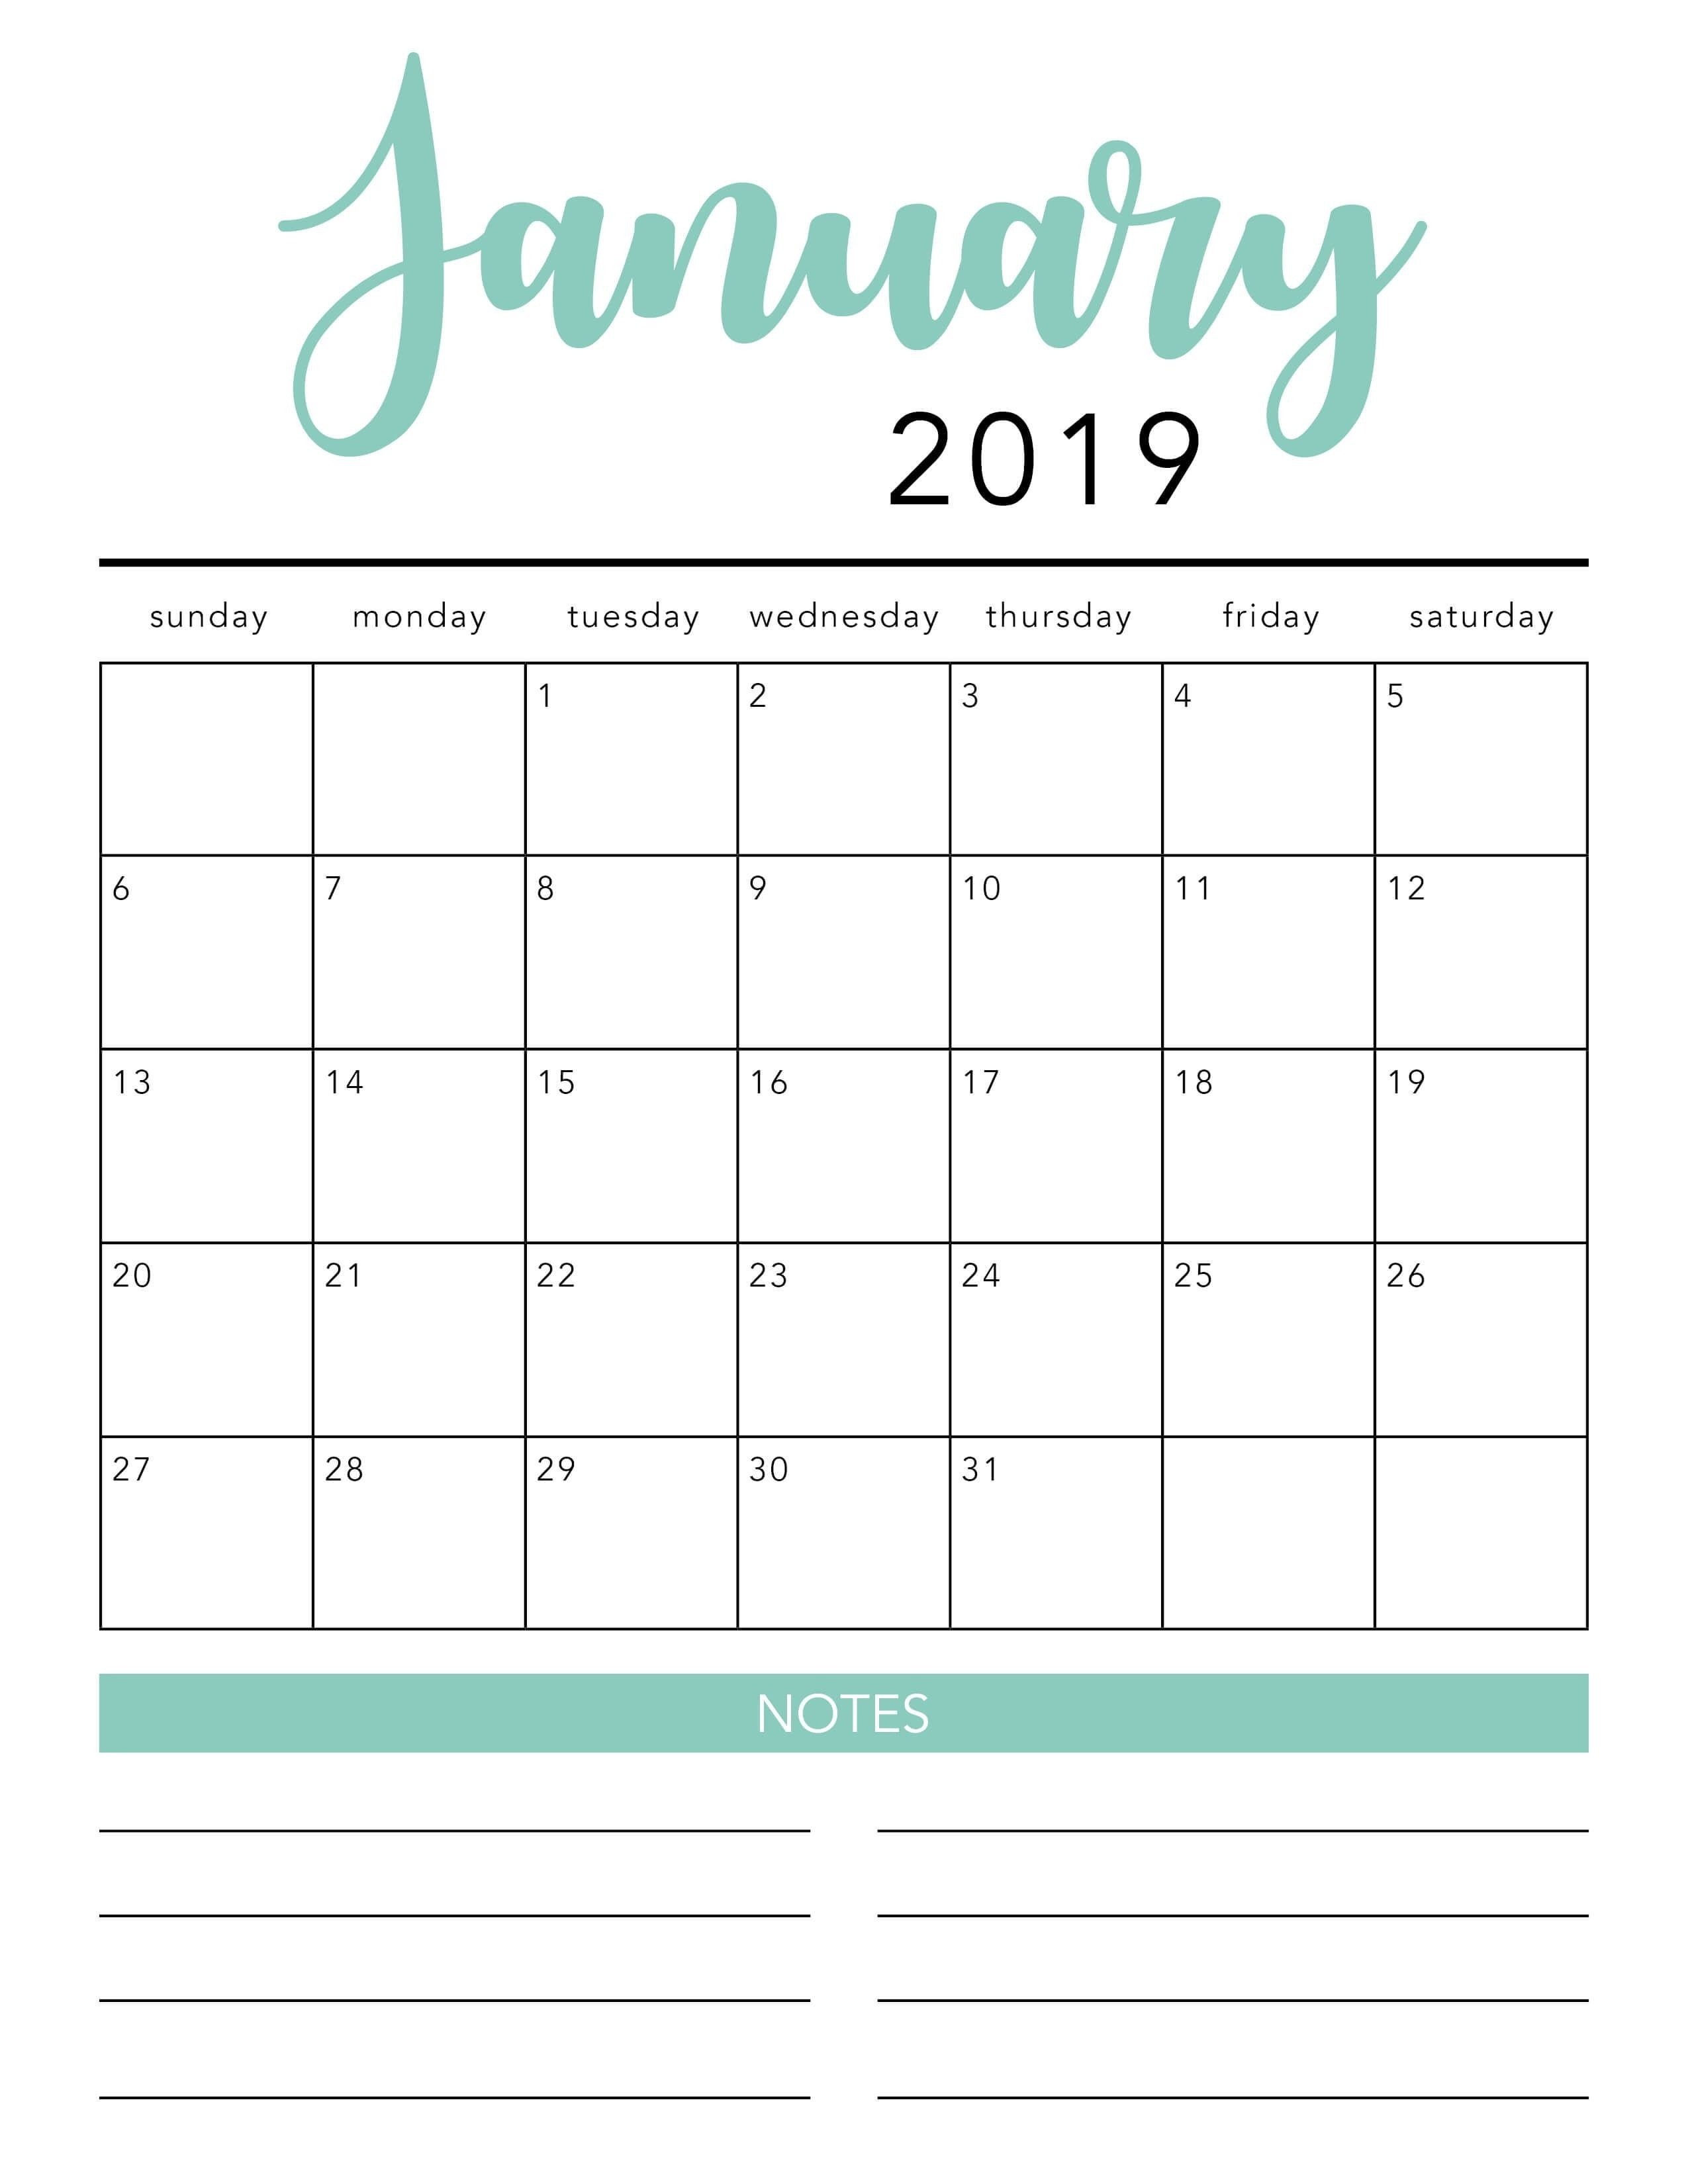 Free 2020 Printable Calendar Template (2 Colors!) - I Heart-Monthly Calender 2020 Organizer For Bills